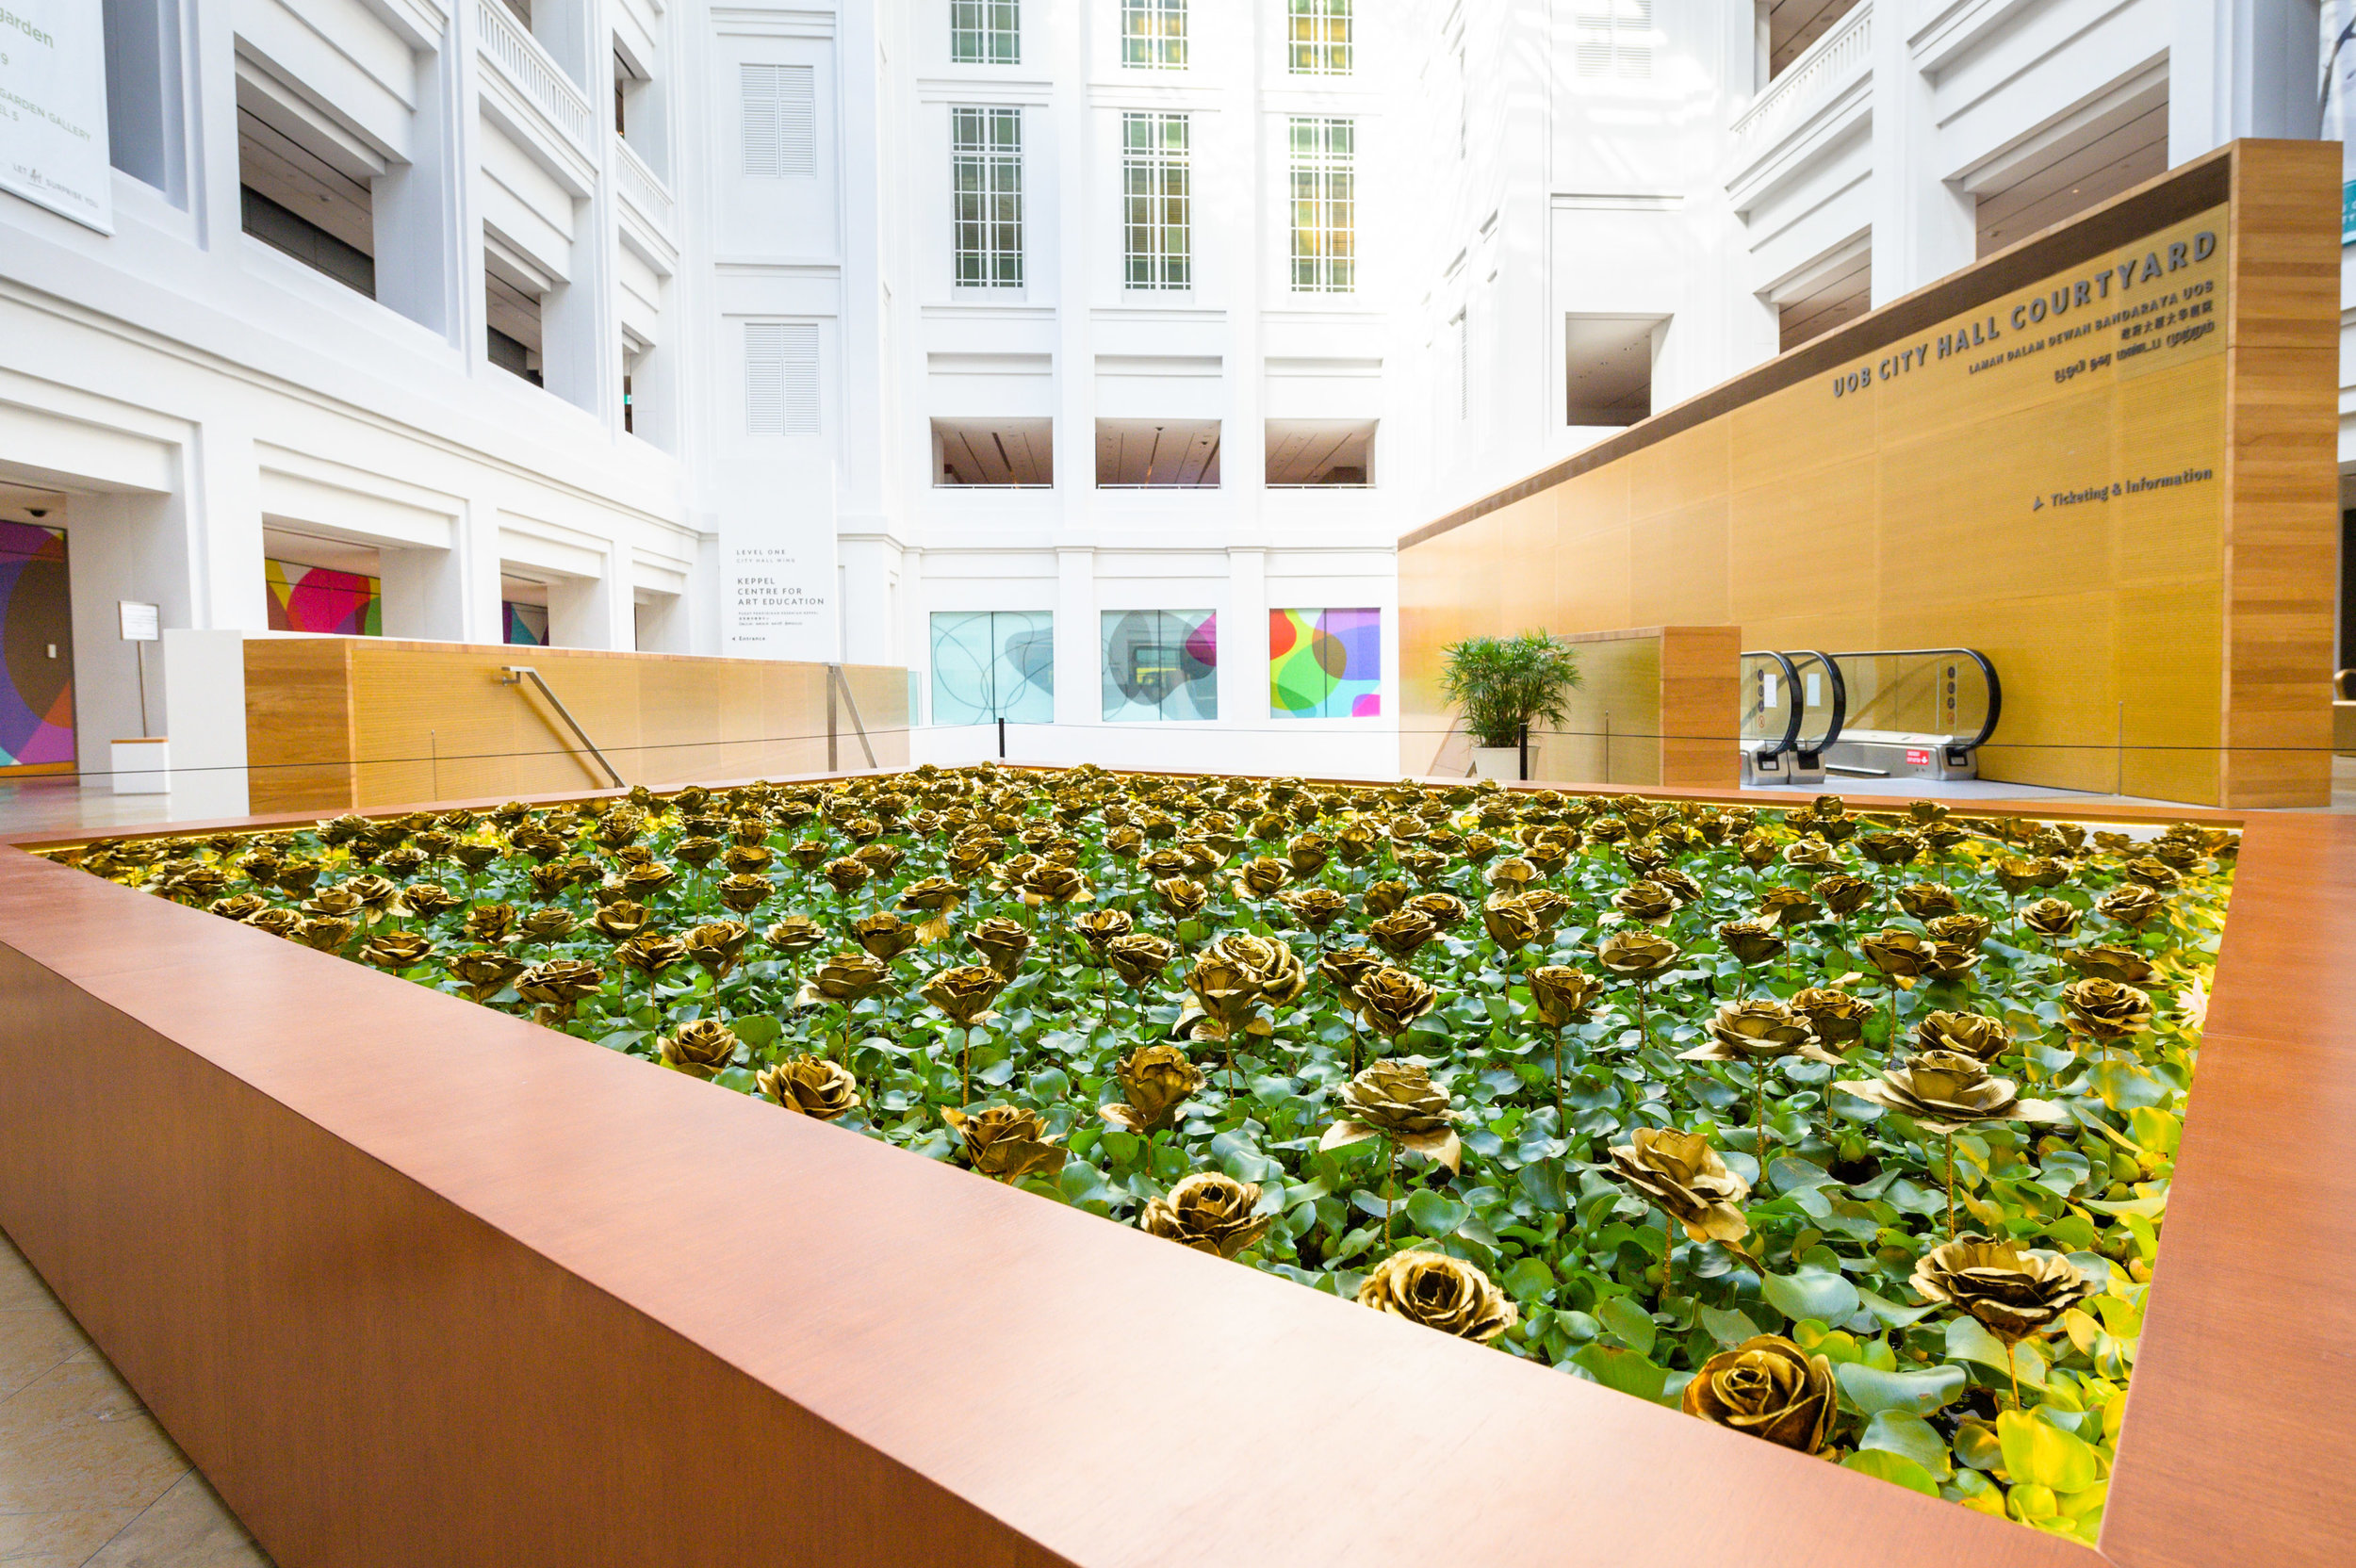 Siti Adiyati,  Eceng Gondok Berbunga Emas (Water Hyacinth with Golden Roses) , 1979/2017, installation view, 'Awakenings: Art in Society in Asia 1960s–1990s', National Gallery Singapore, 2019; image courtesy National Gallery Singapore